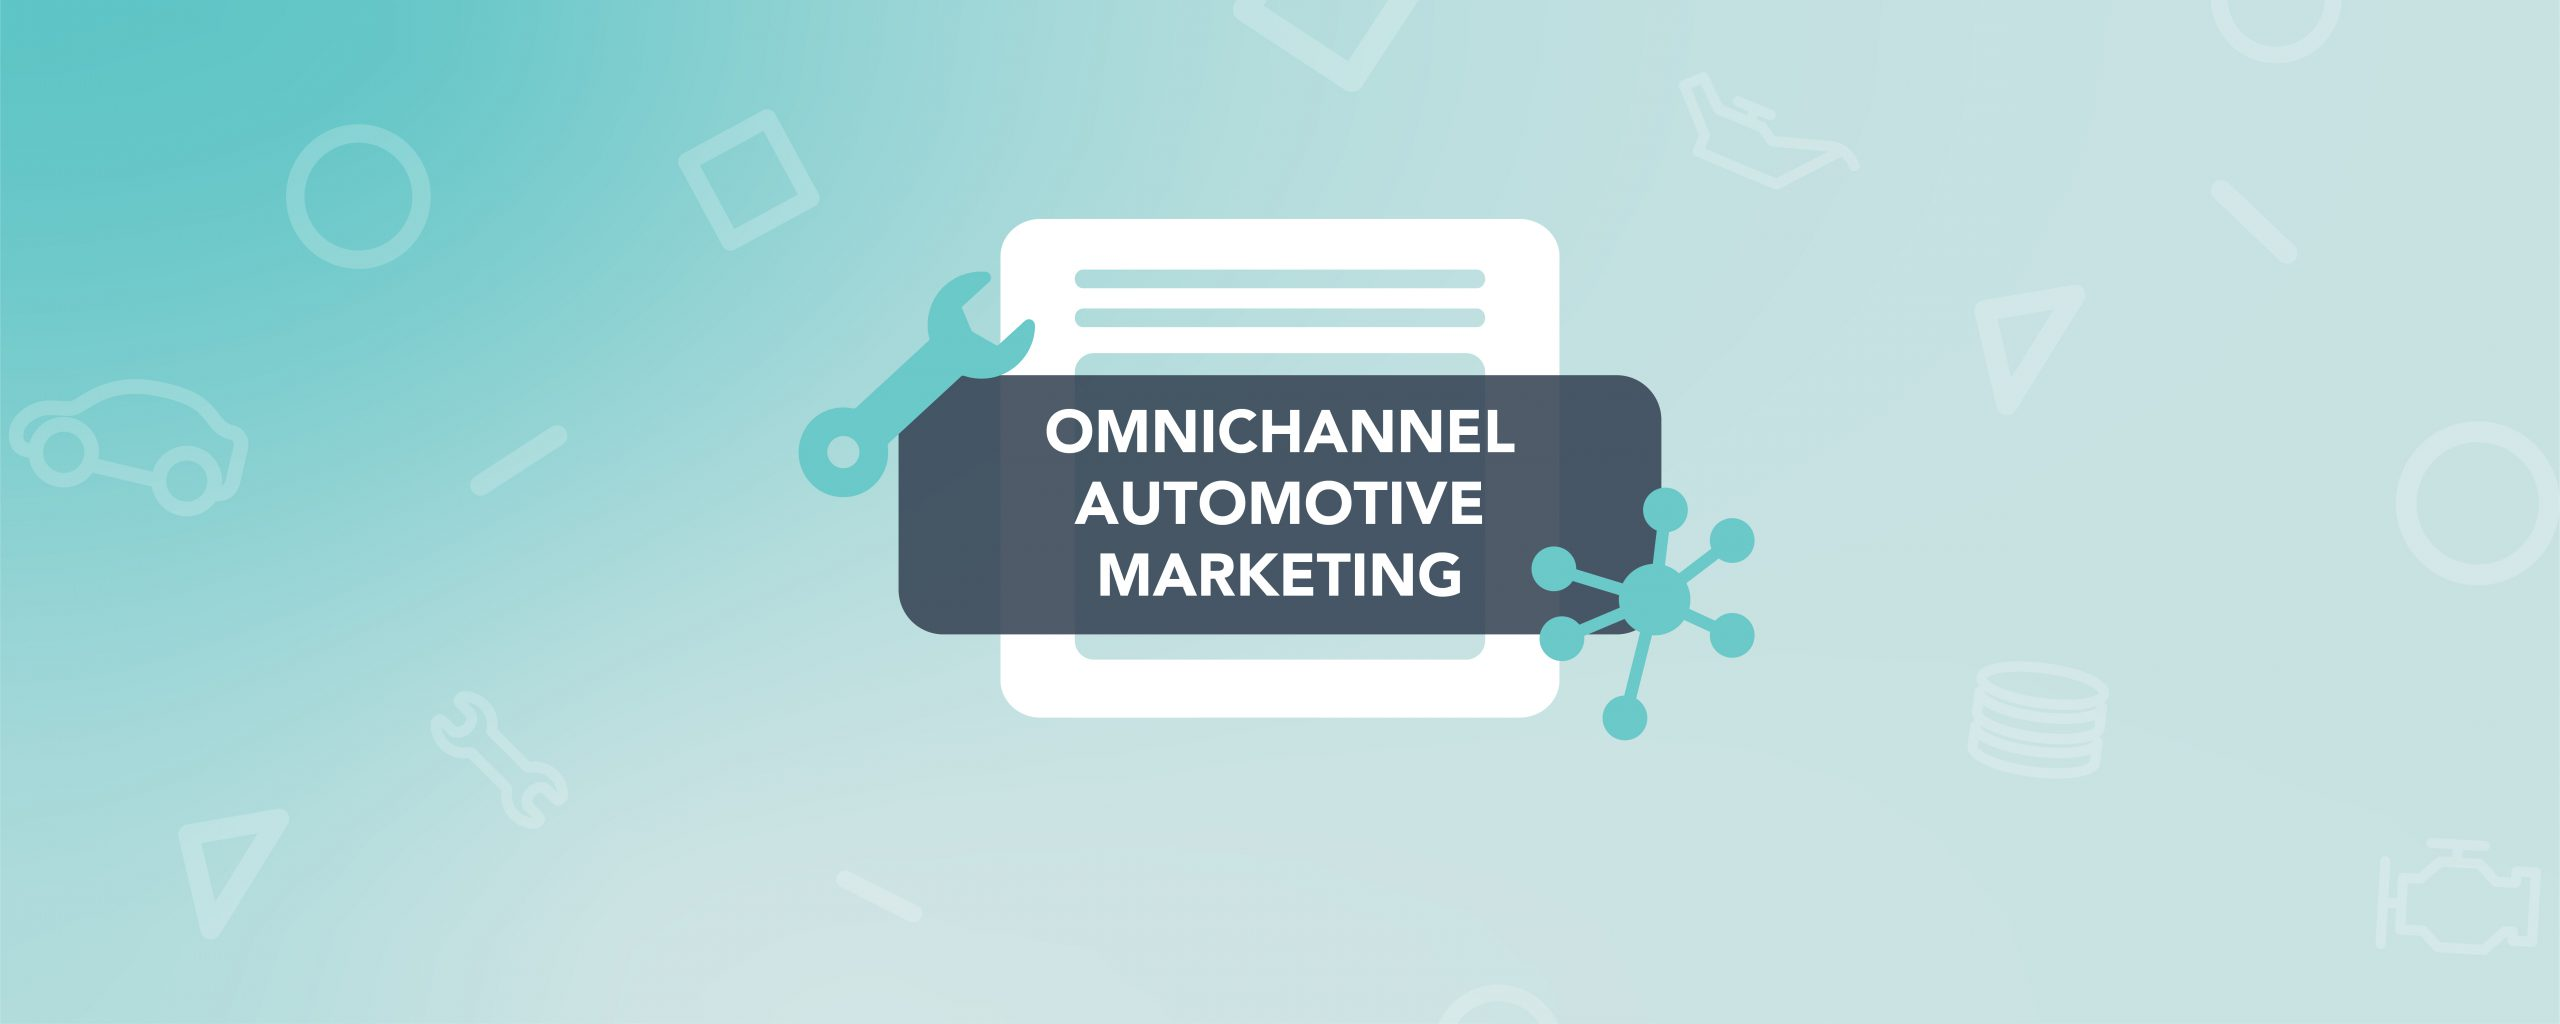 Omnichannel Automotive Marketing